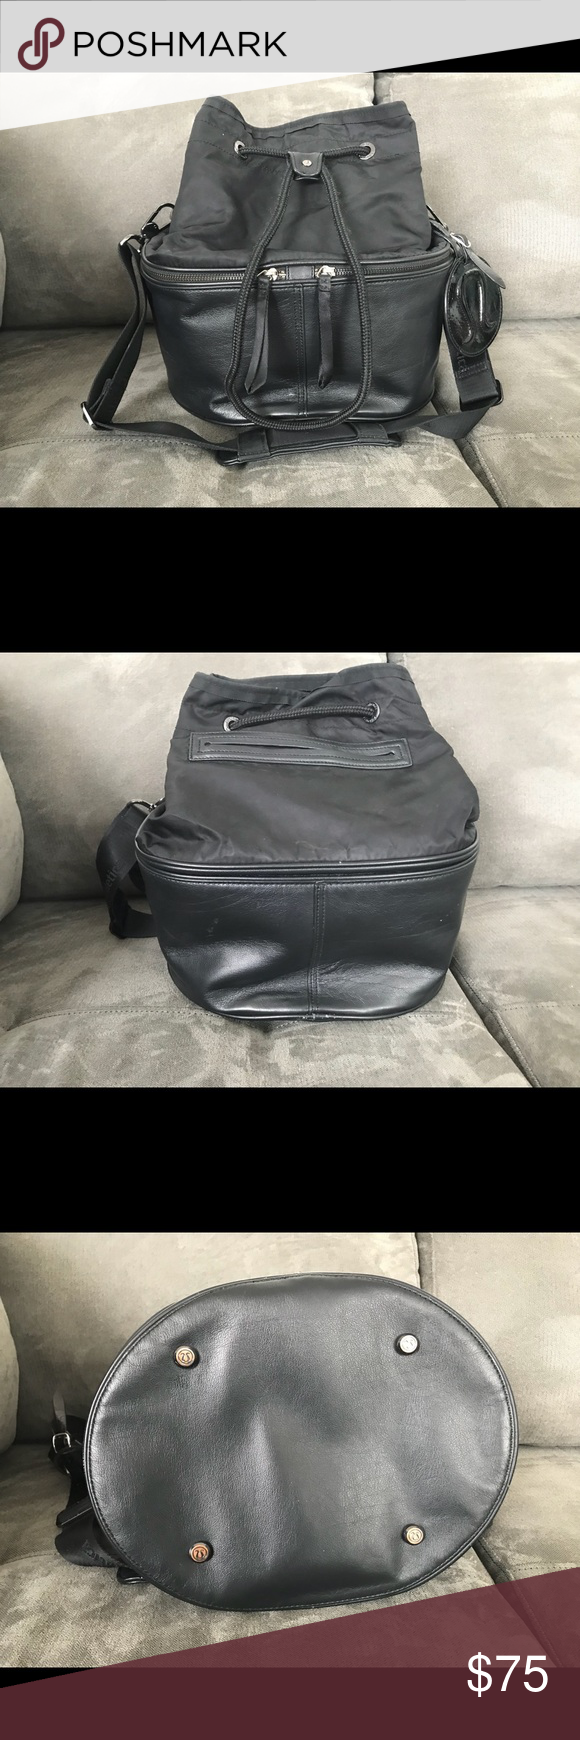 fdb297e7b77e30 Gently Used Lululemon Method Bucket Bag Lovely gently Used Lululemon bucket  bag. Please see photos for condition - outside looks great with only a tiny  ...